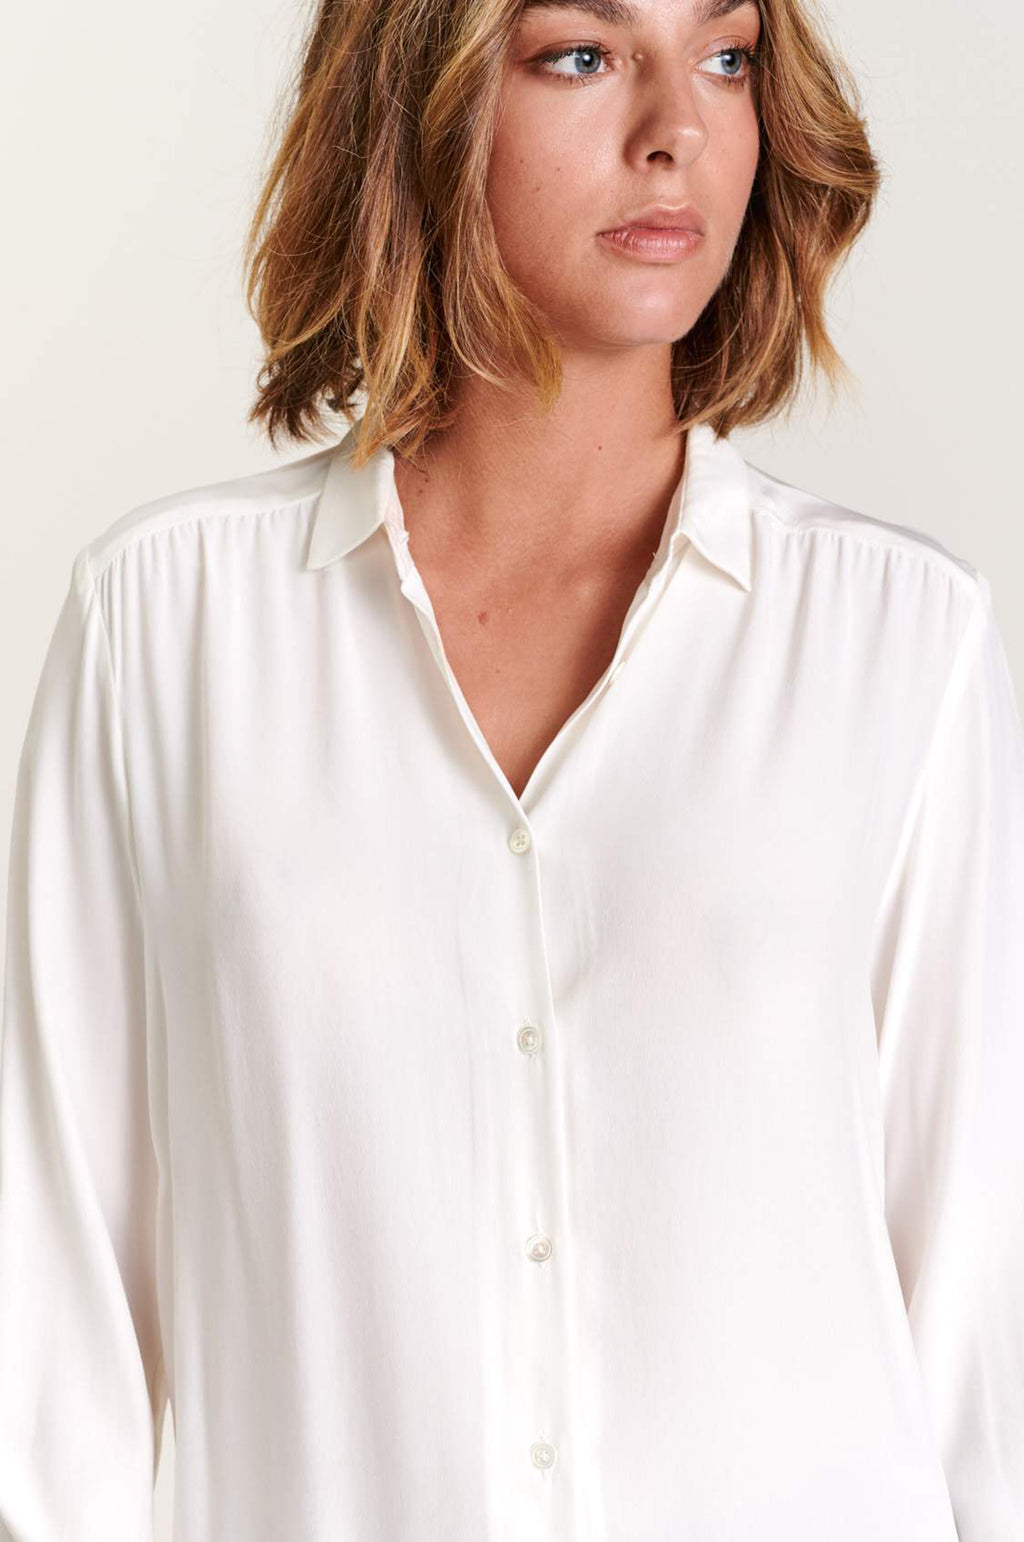 Astra Blouse in Natural